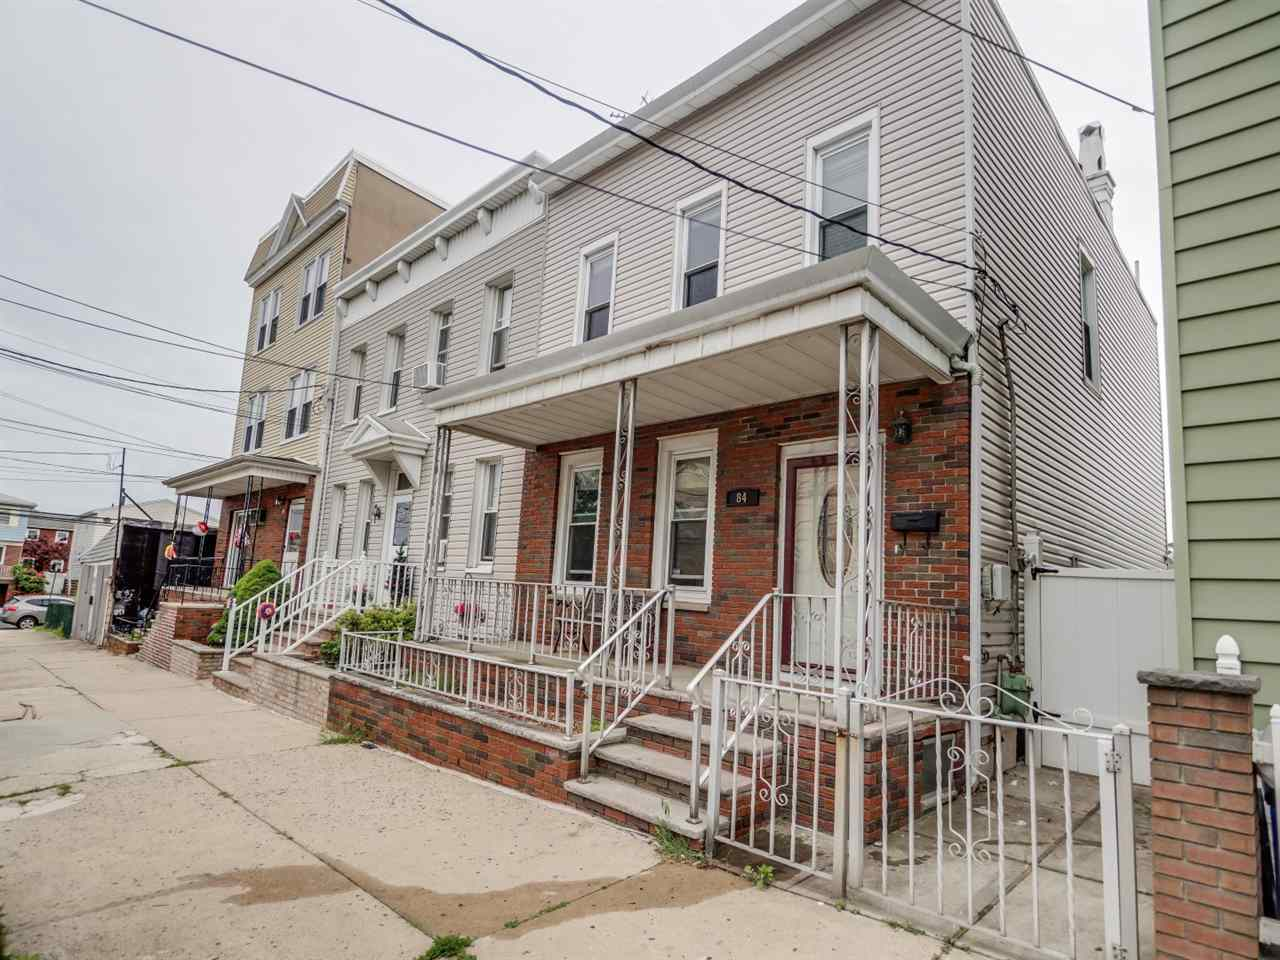 84 EAST 27TH ST, Bayonne, NJ 07002